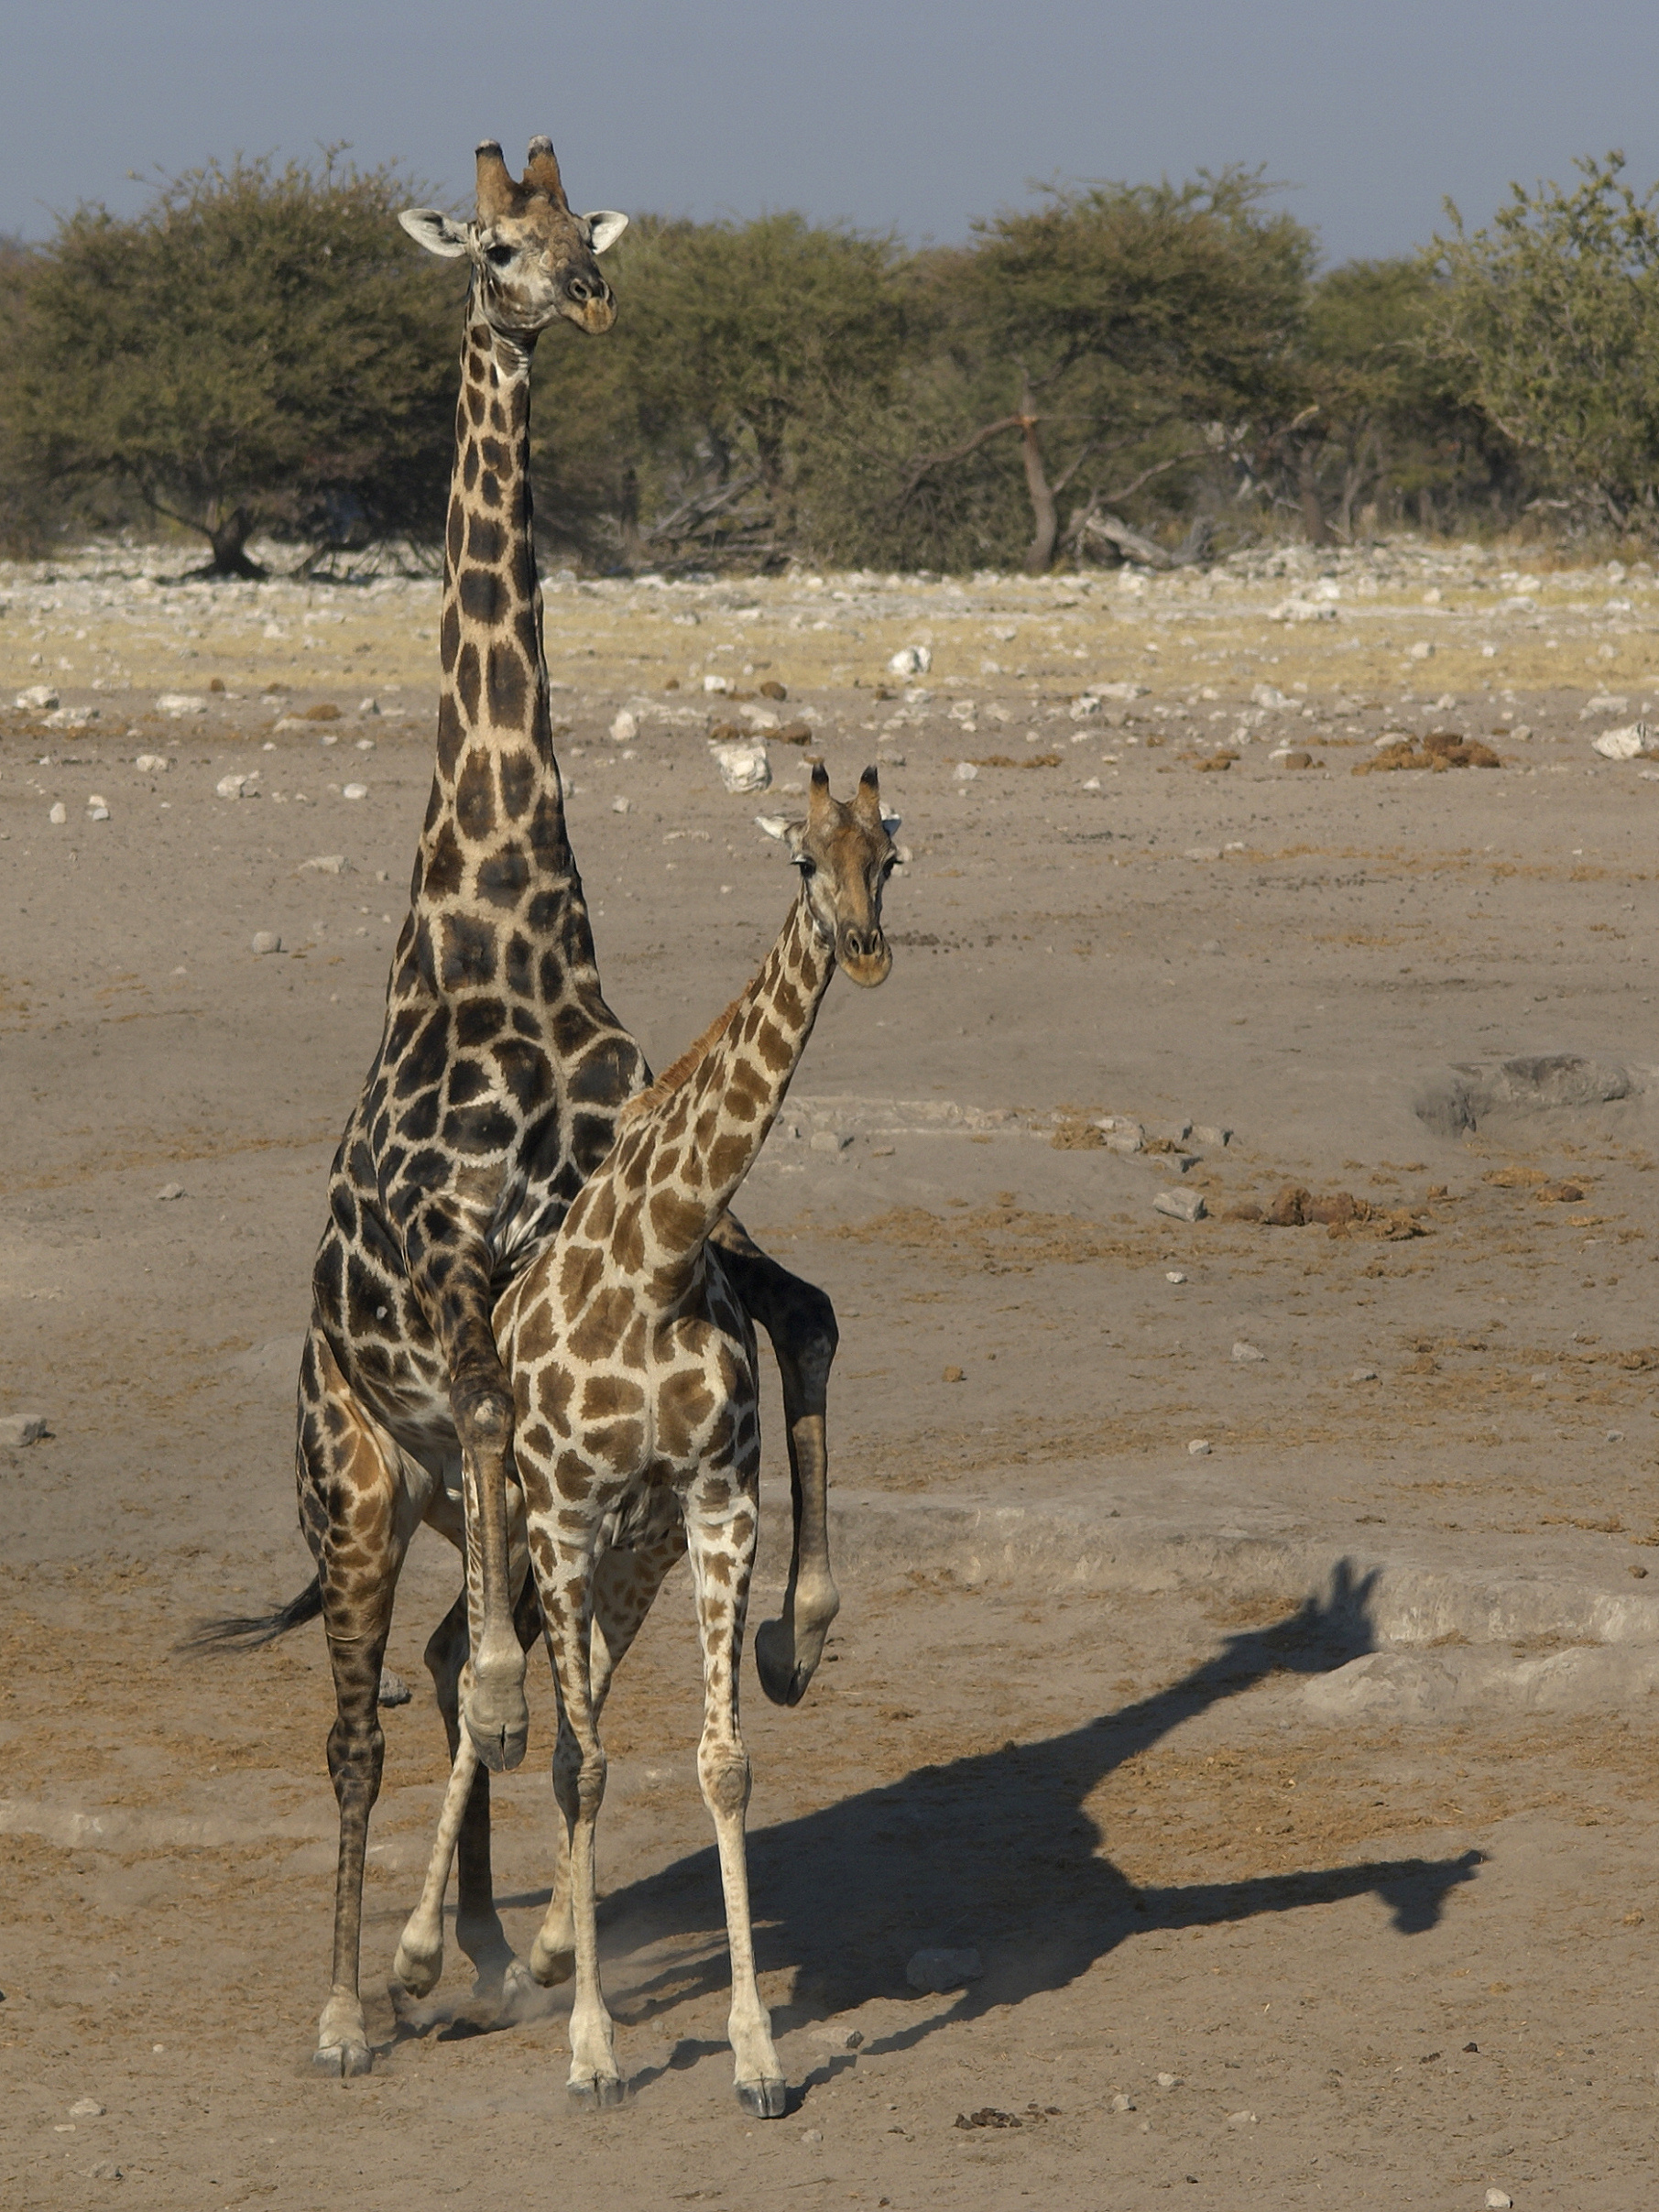 Animal Came In Her Mouth Porn before mating, the female giraffe will first urinate in the